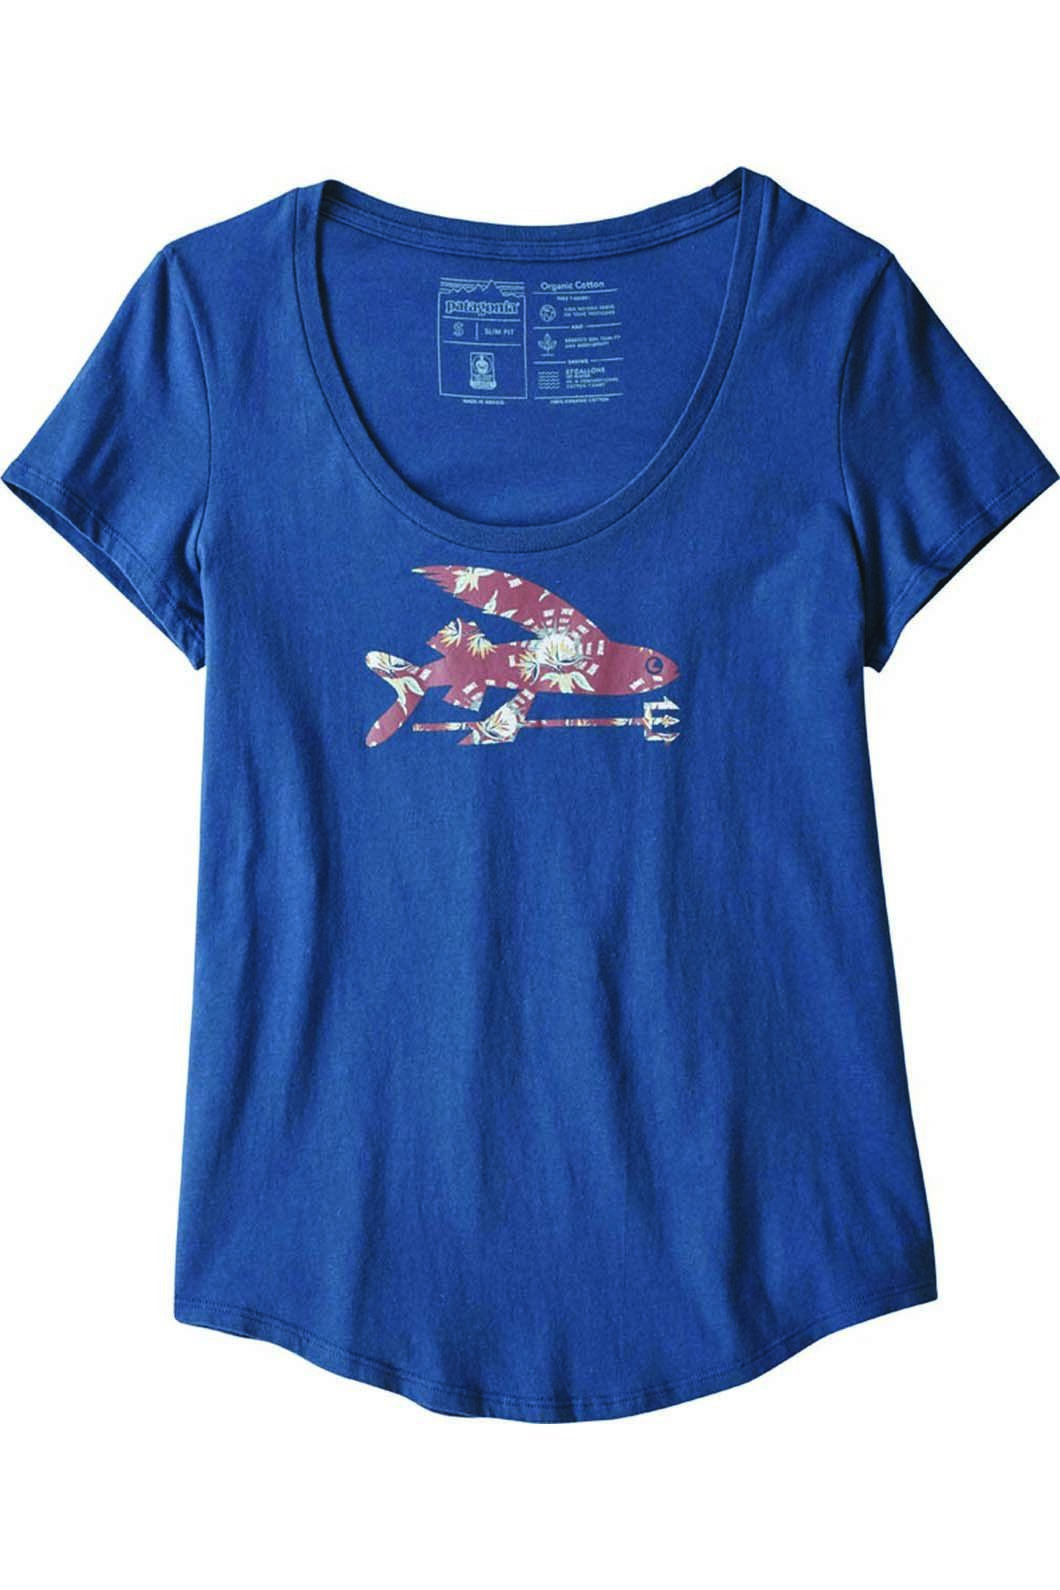 Patagonia Women's Flying Fish Scope Organic Tee Stone, STONE BLUE, hi-res